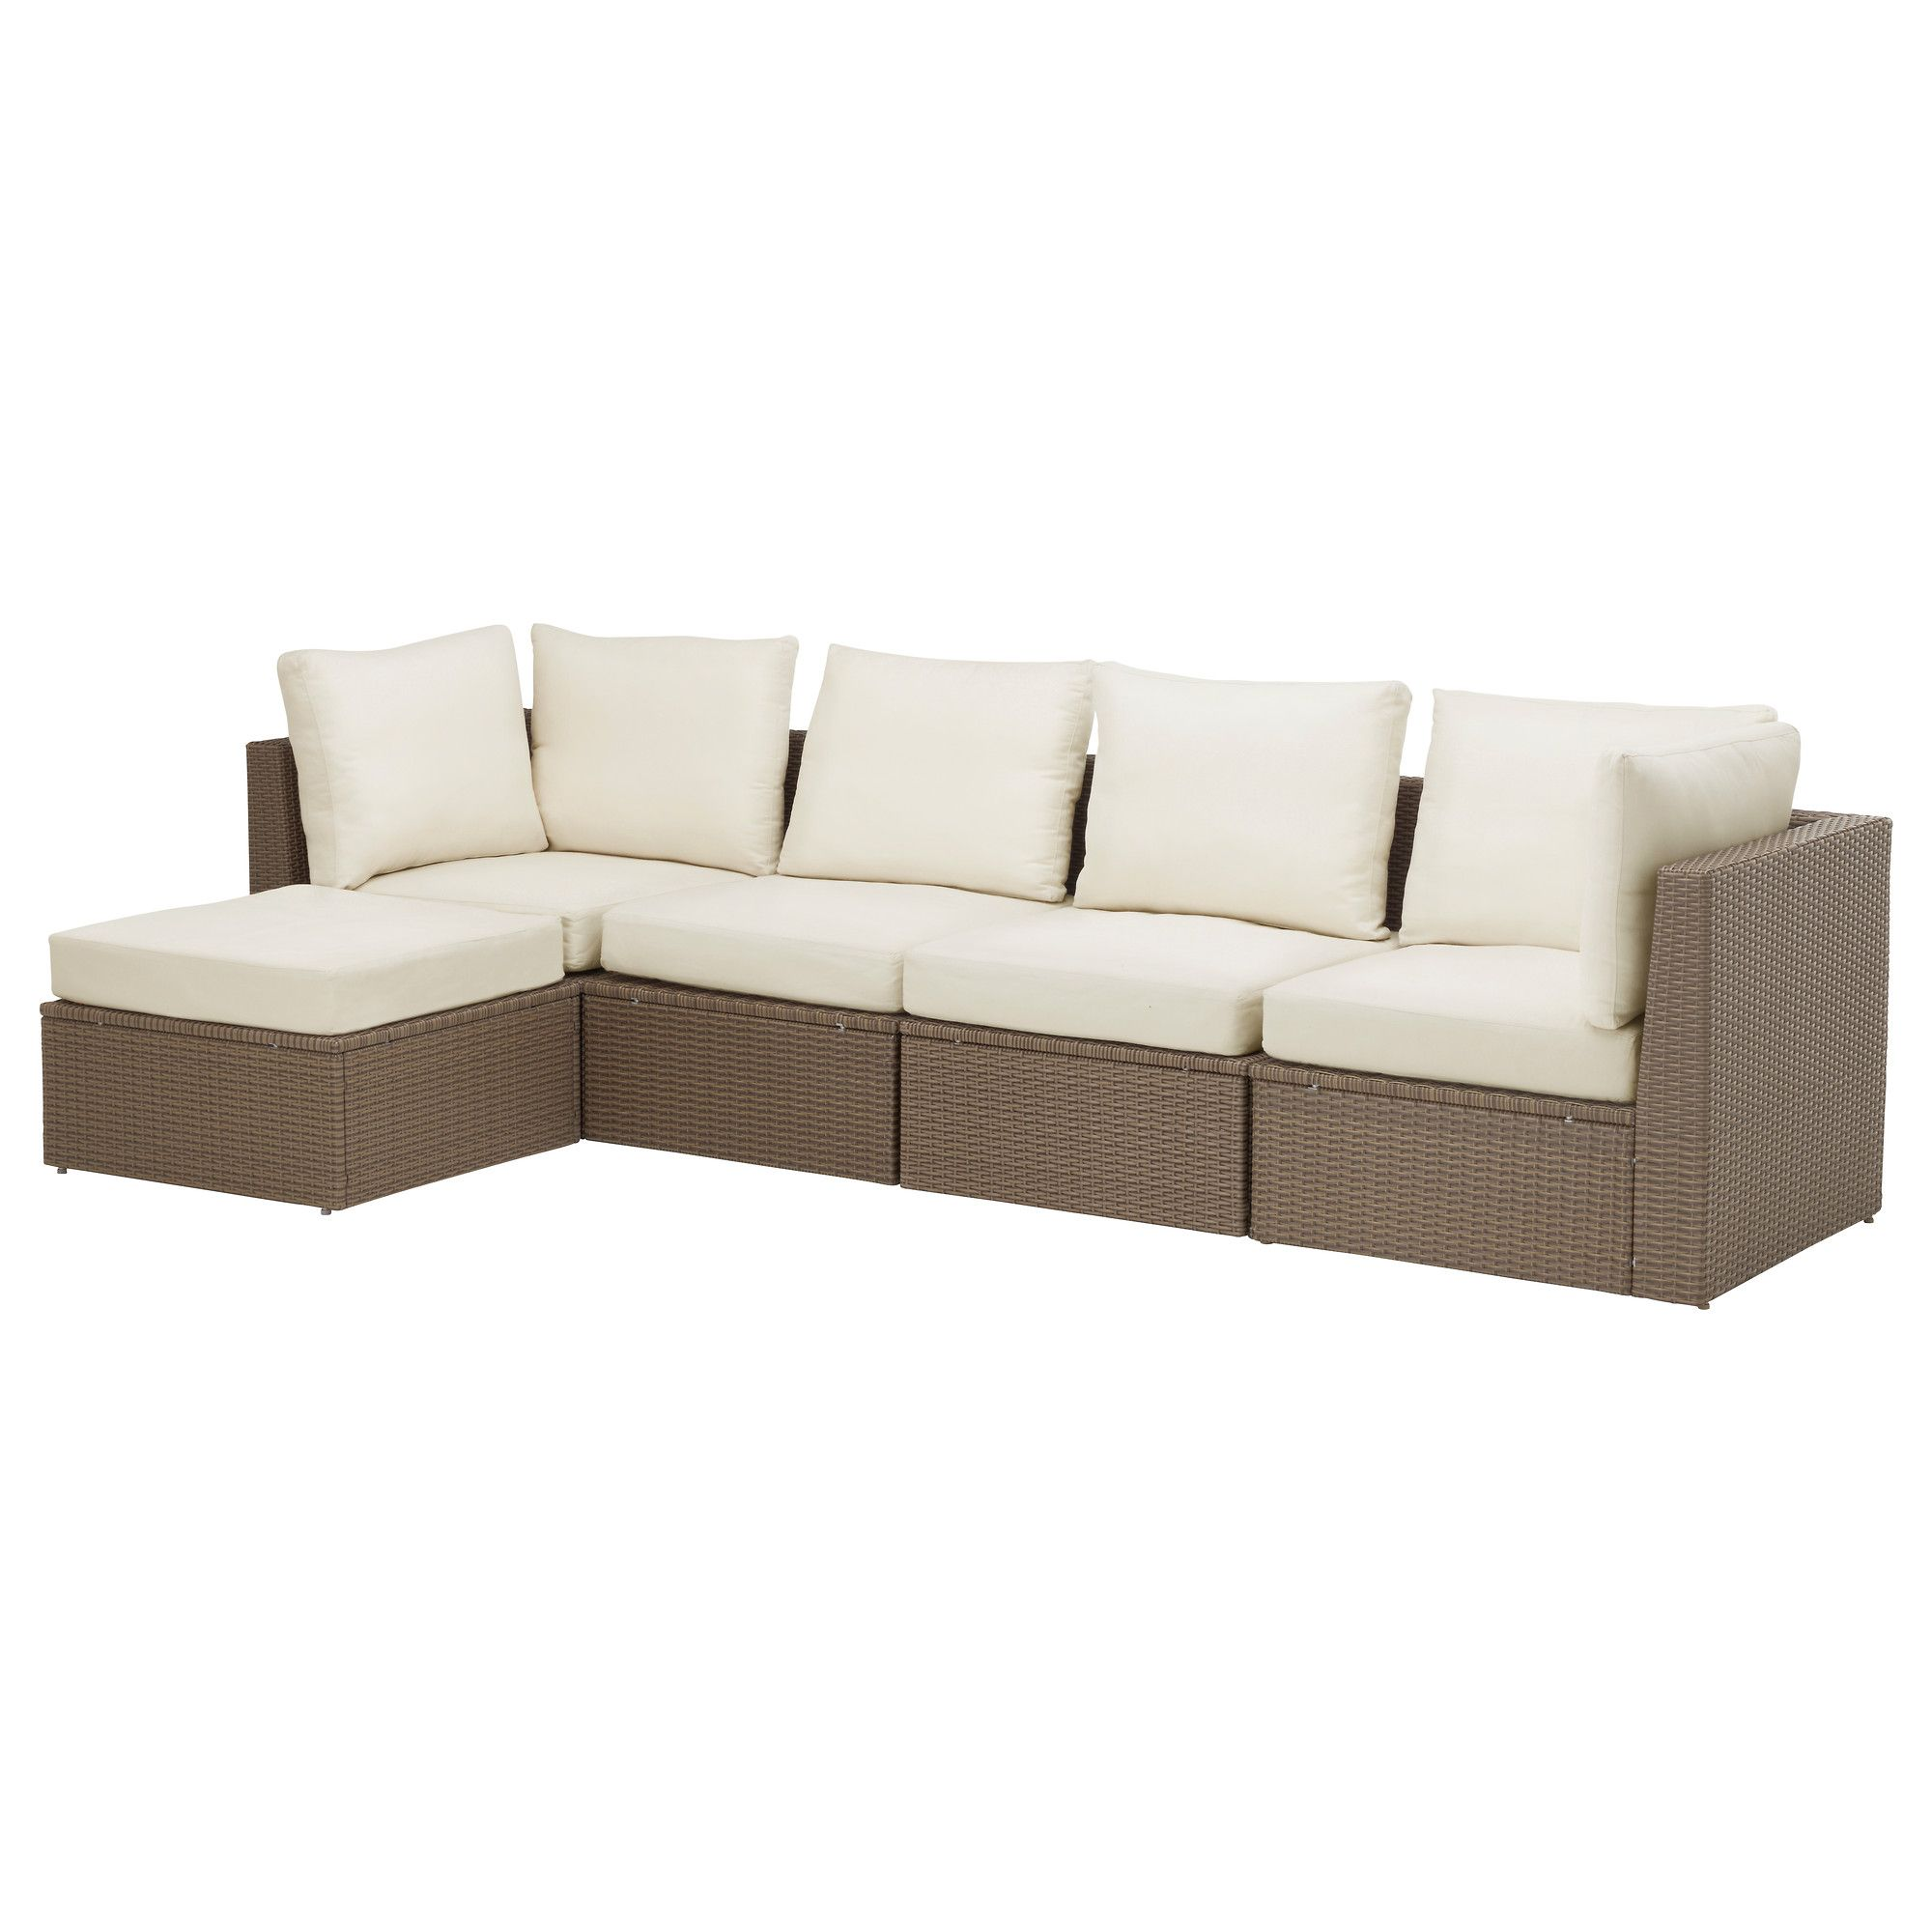 Or This For Balcony Arholma Sofa Combination Ikea The Great